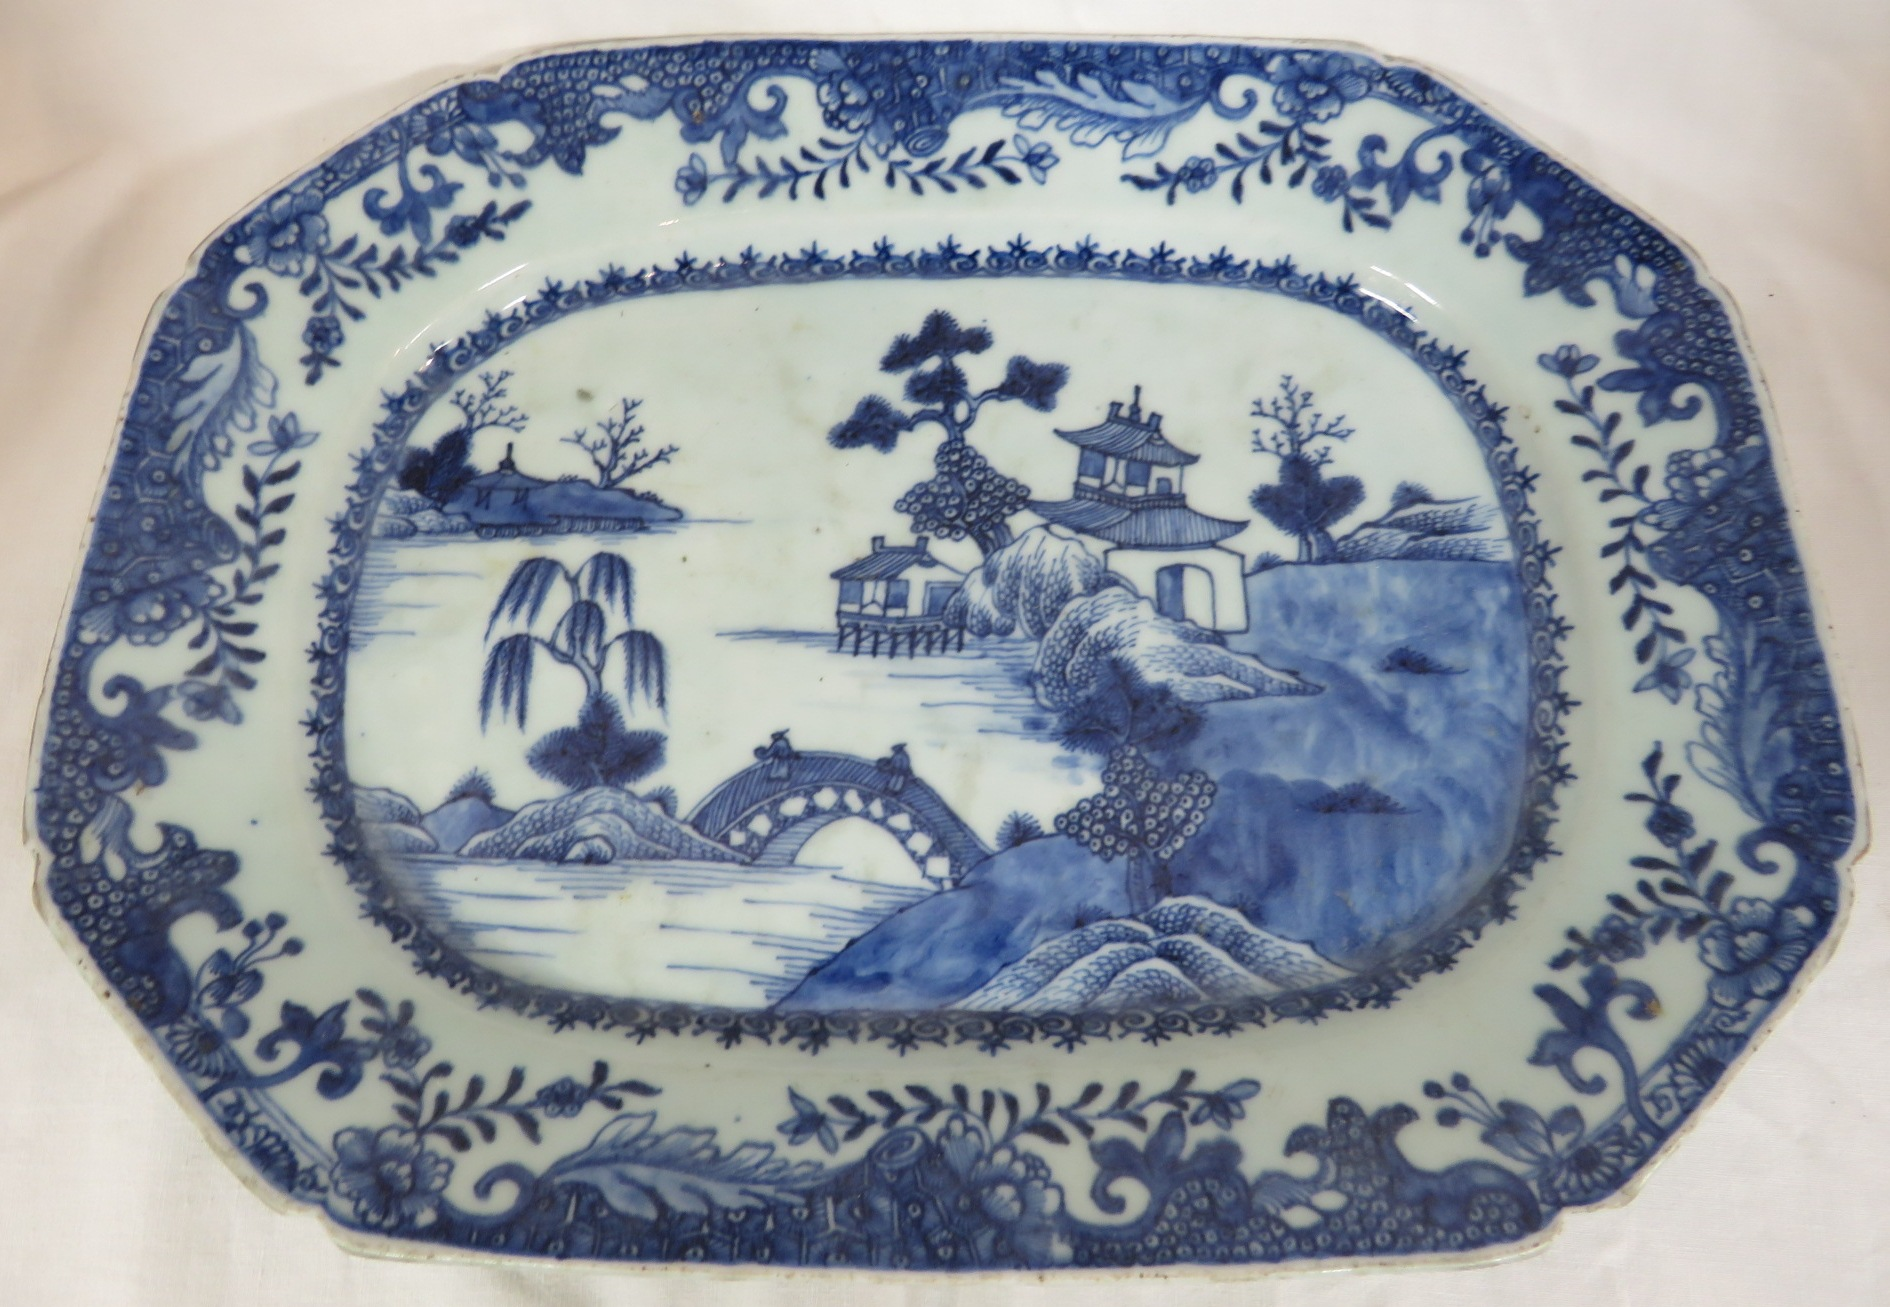 Lot 107 - A porcelain dish or charger of octagonal oblong shape, decorated in underglaze blue in the Chinese